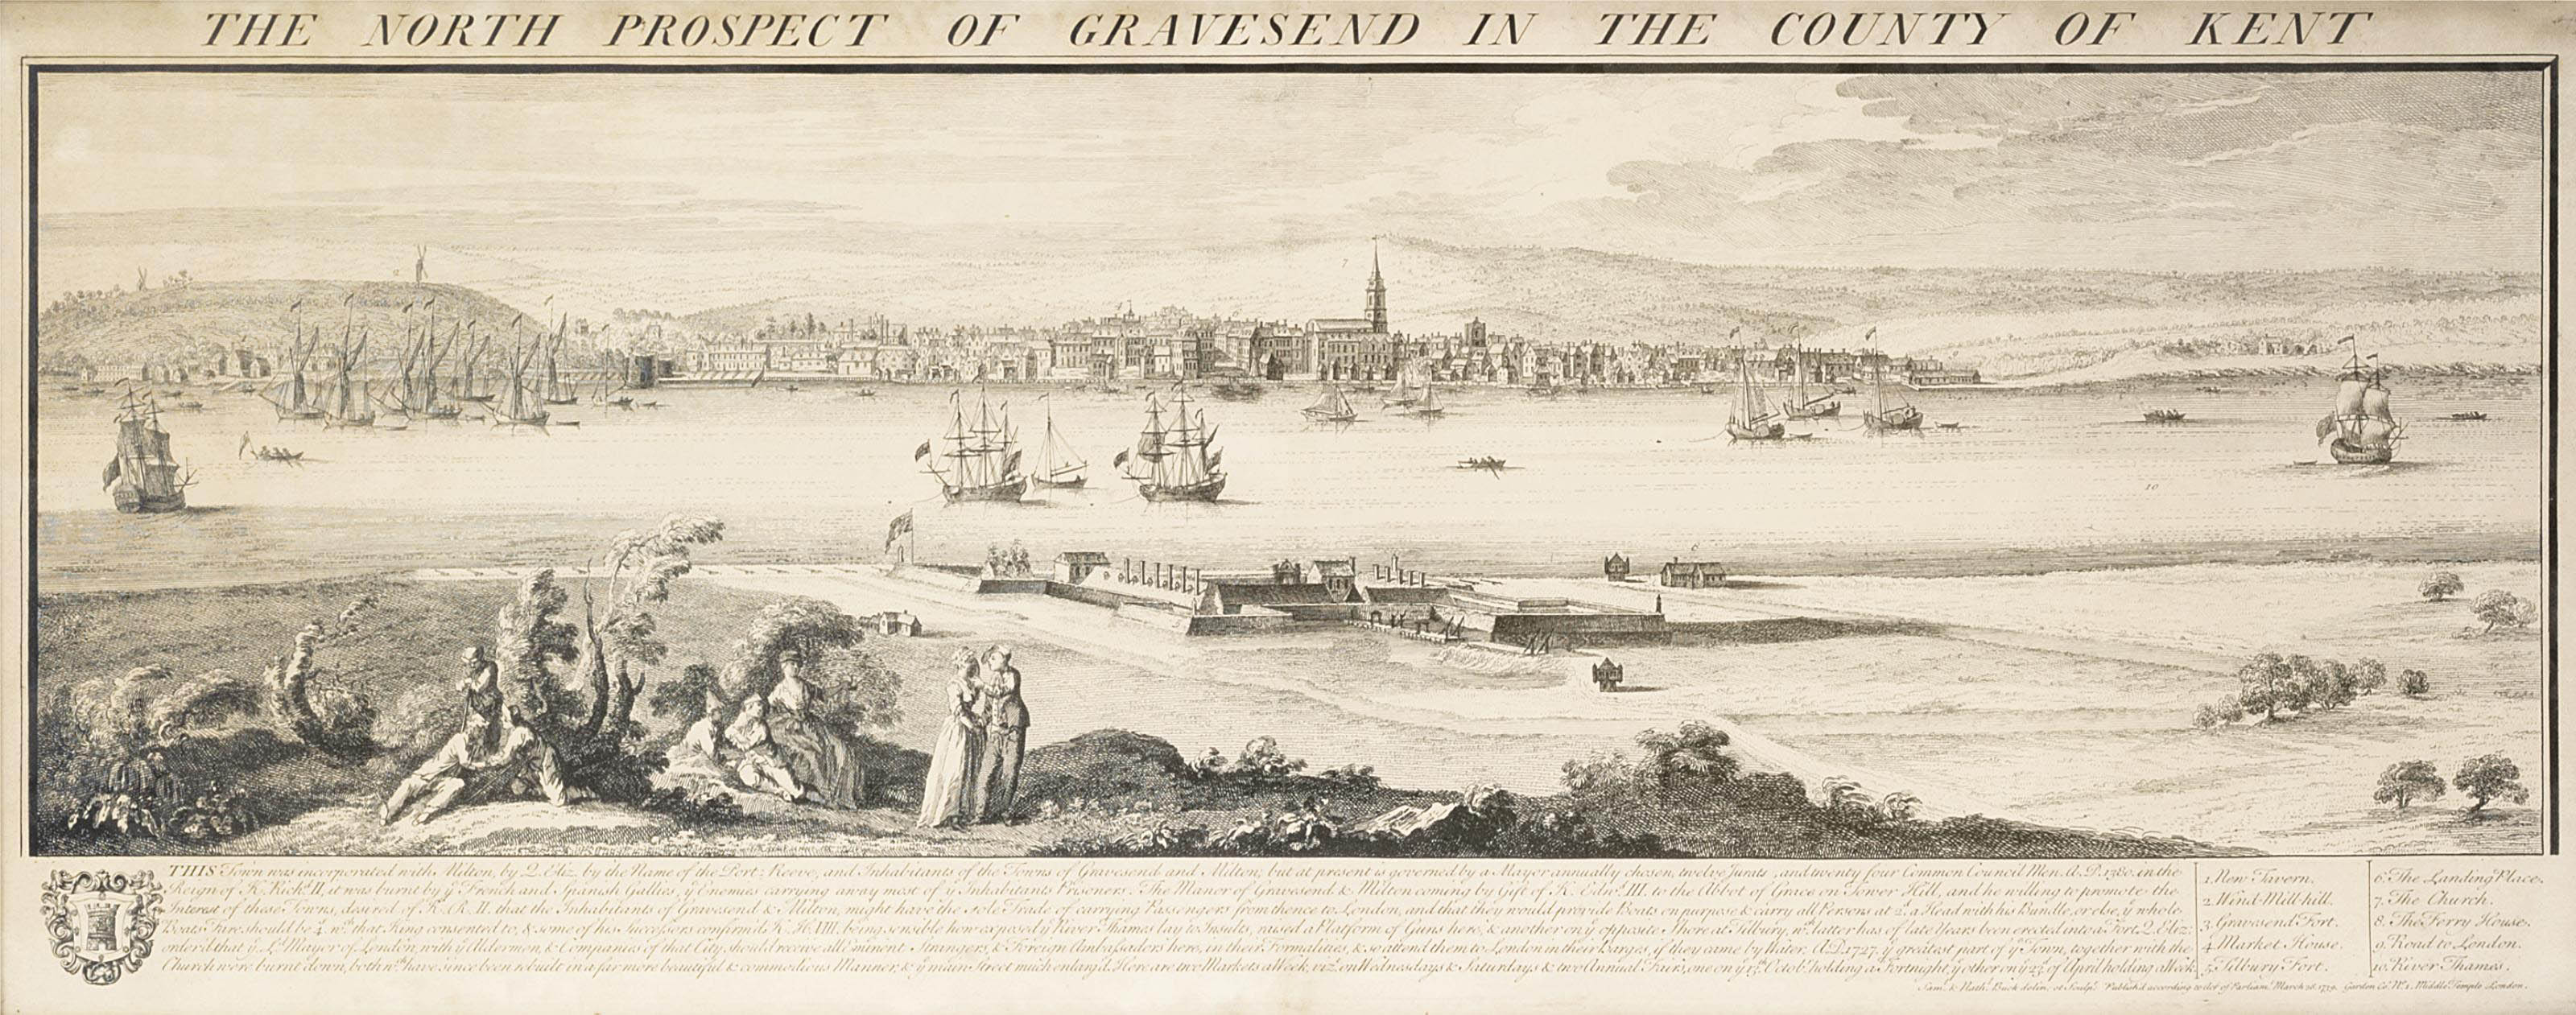 The North-West Prospect of Deptford, in the County of Kent; The North-West Prospect of Greenwich, in the County of Kent; The North Prospect of Gravesend, in the County of Kent; The North Prospect of Woolwich, in the County of Kent; and The North West Prospect of Sheerness, in the County of Kent